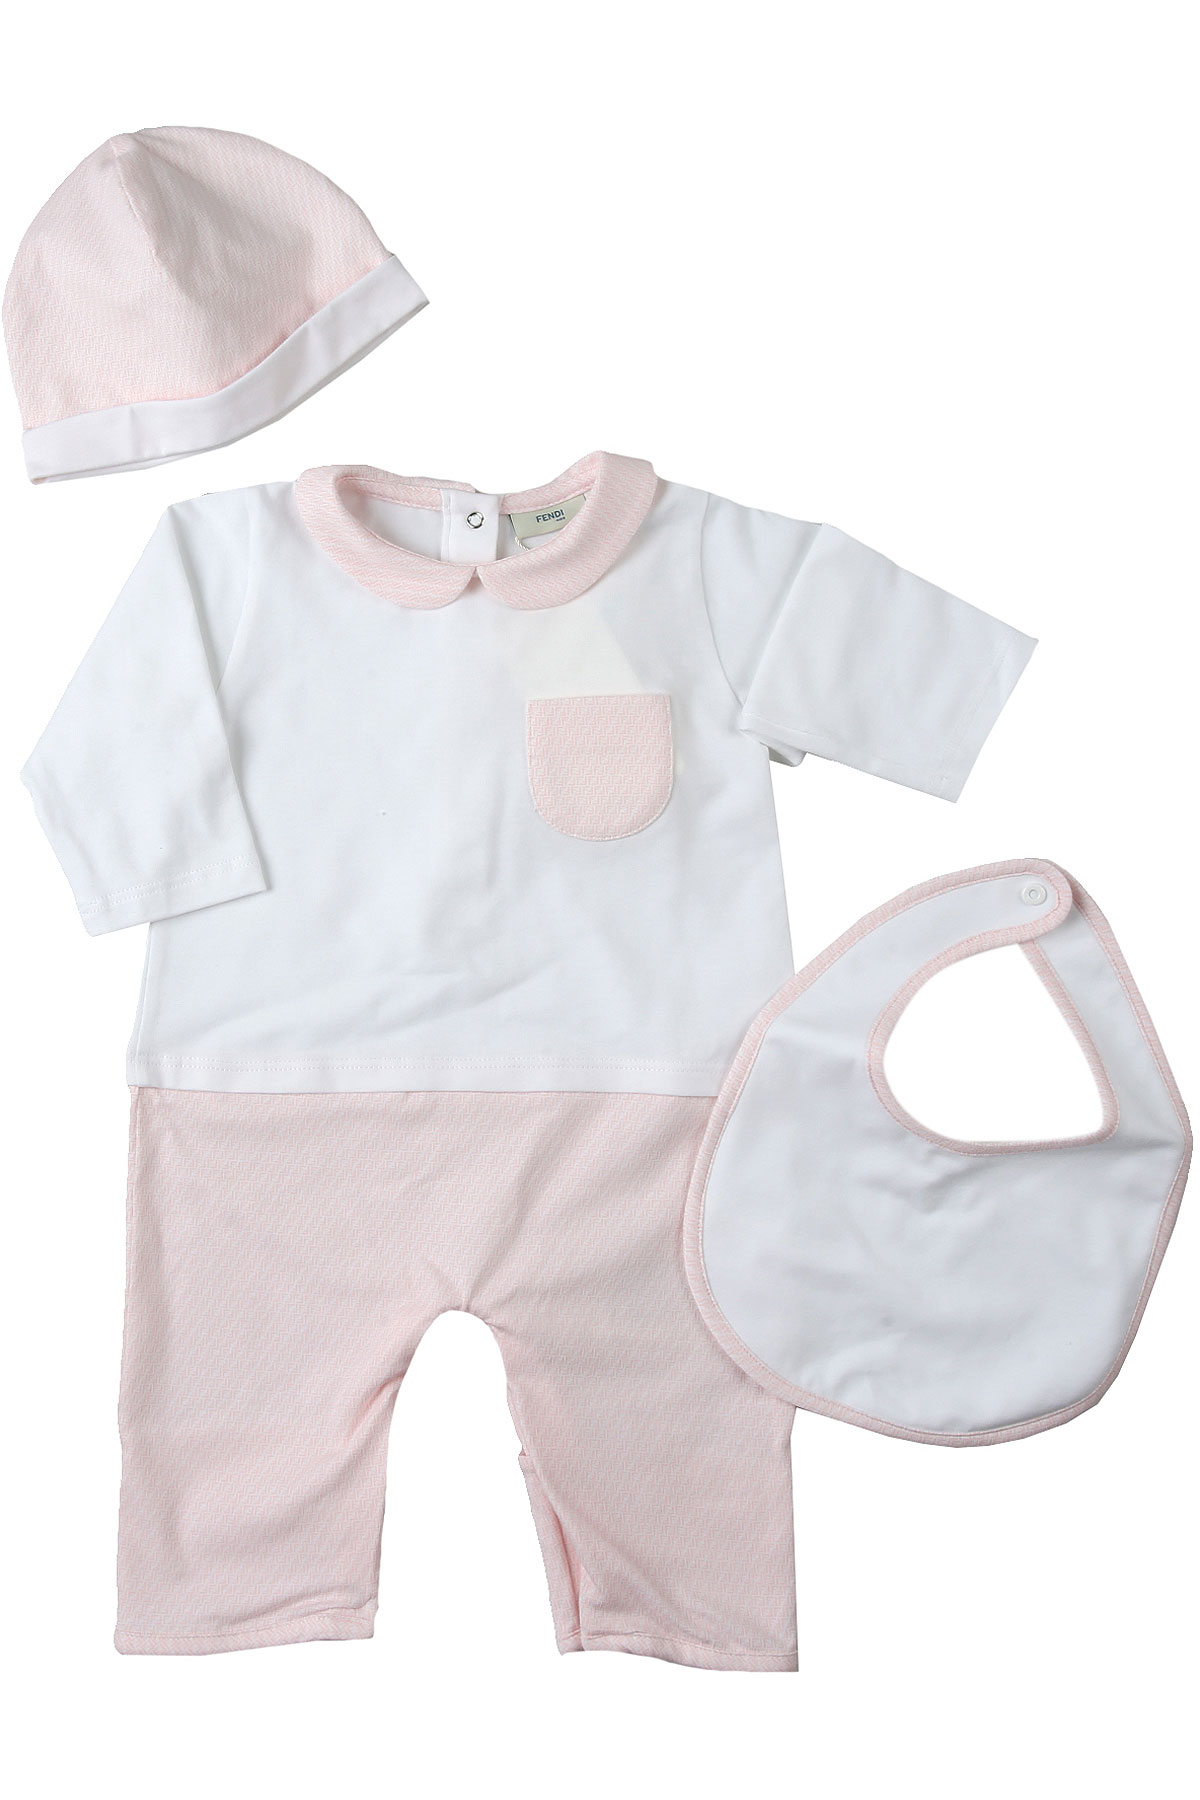 Fendi Baby Sets for Girls On Sale, White, Cotton, 2019, 1M 3M 6M